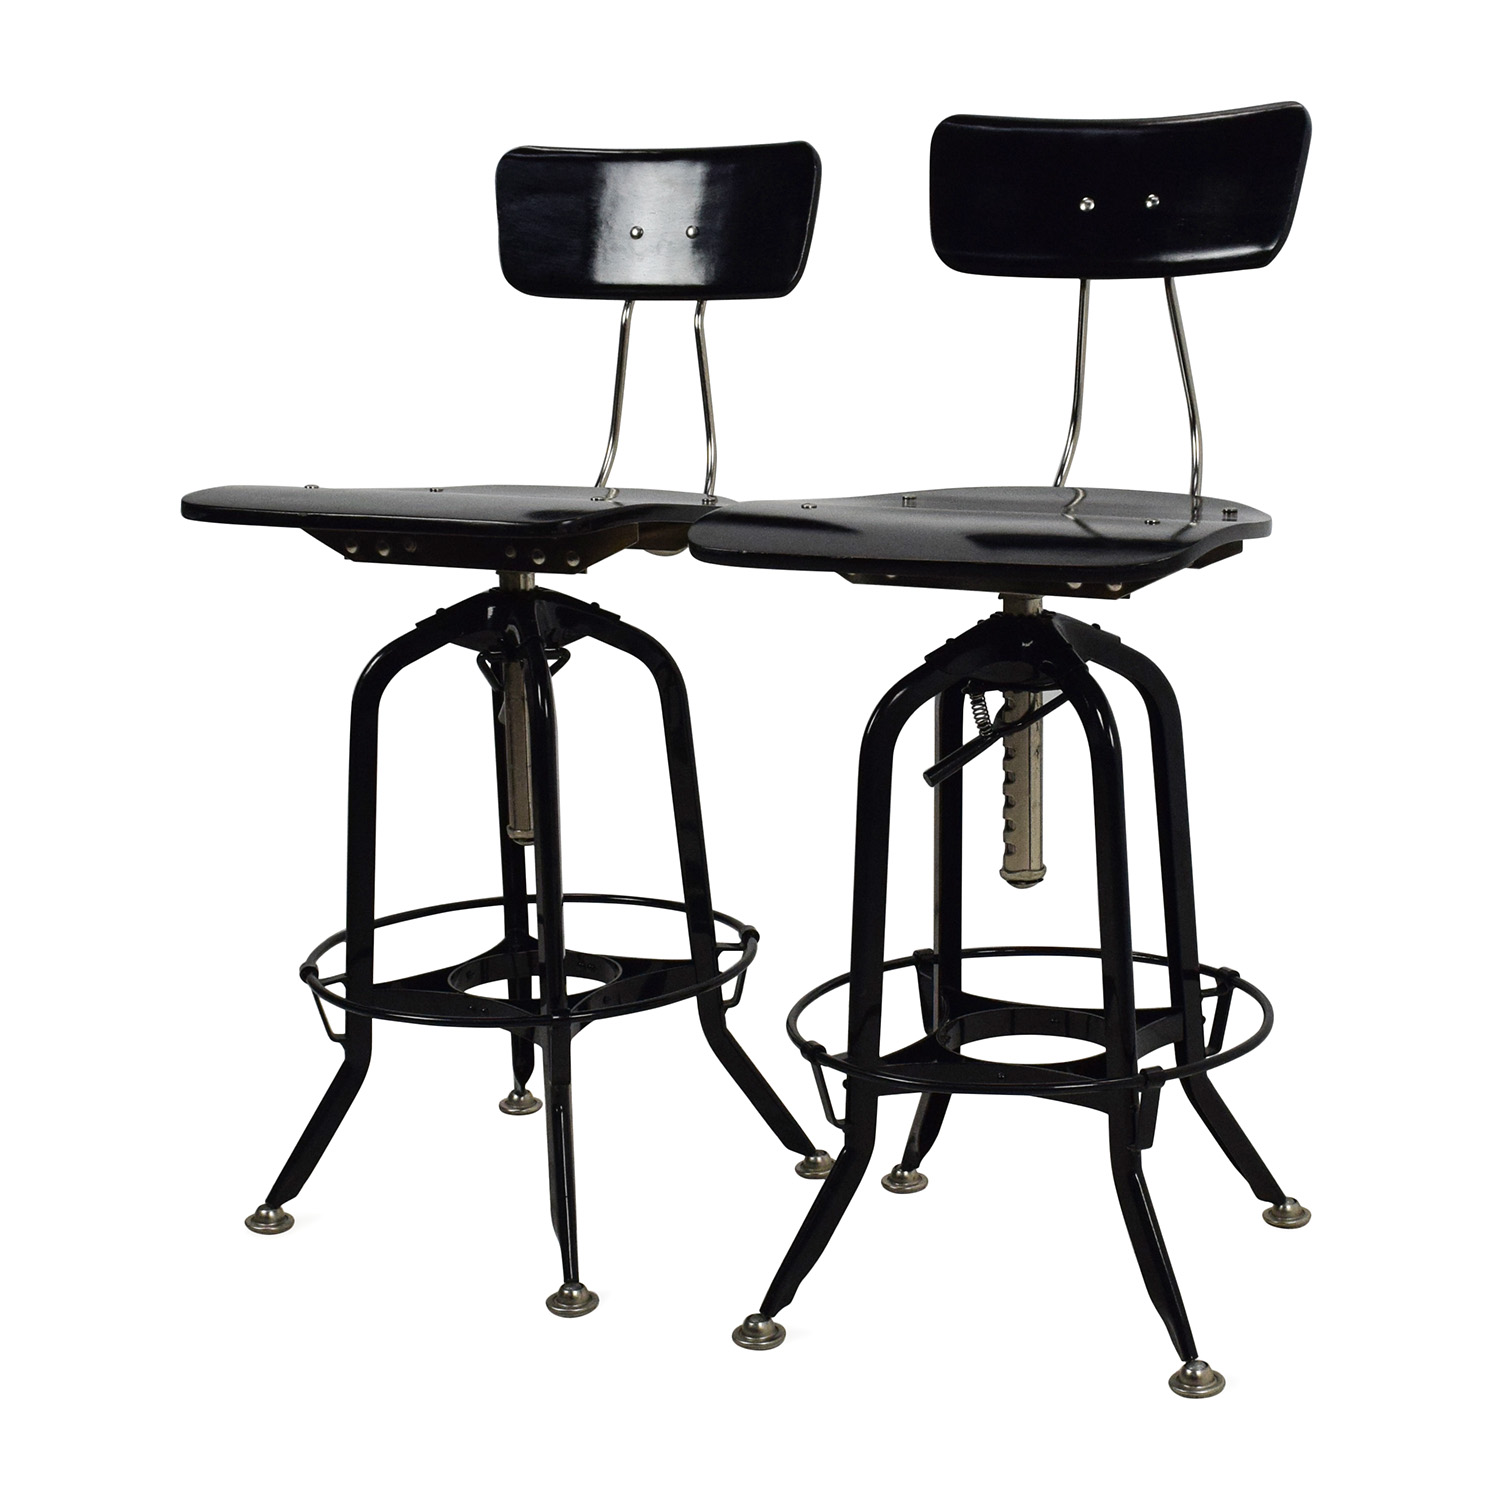 Vintage Toledo Bar Chair Chairs Model